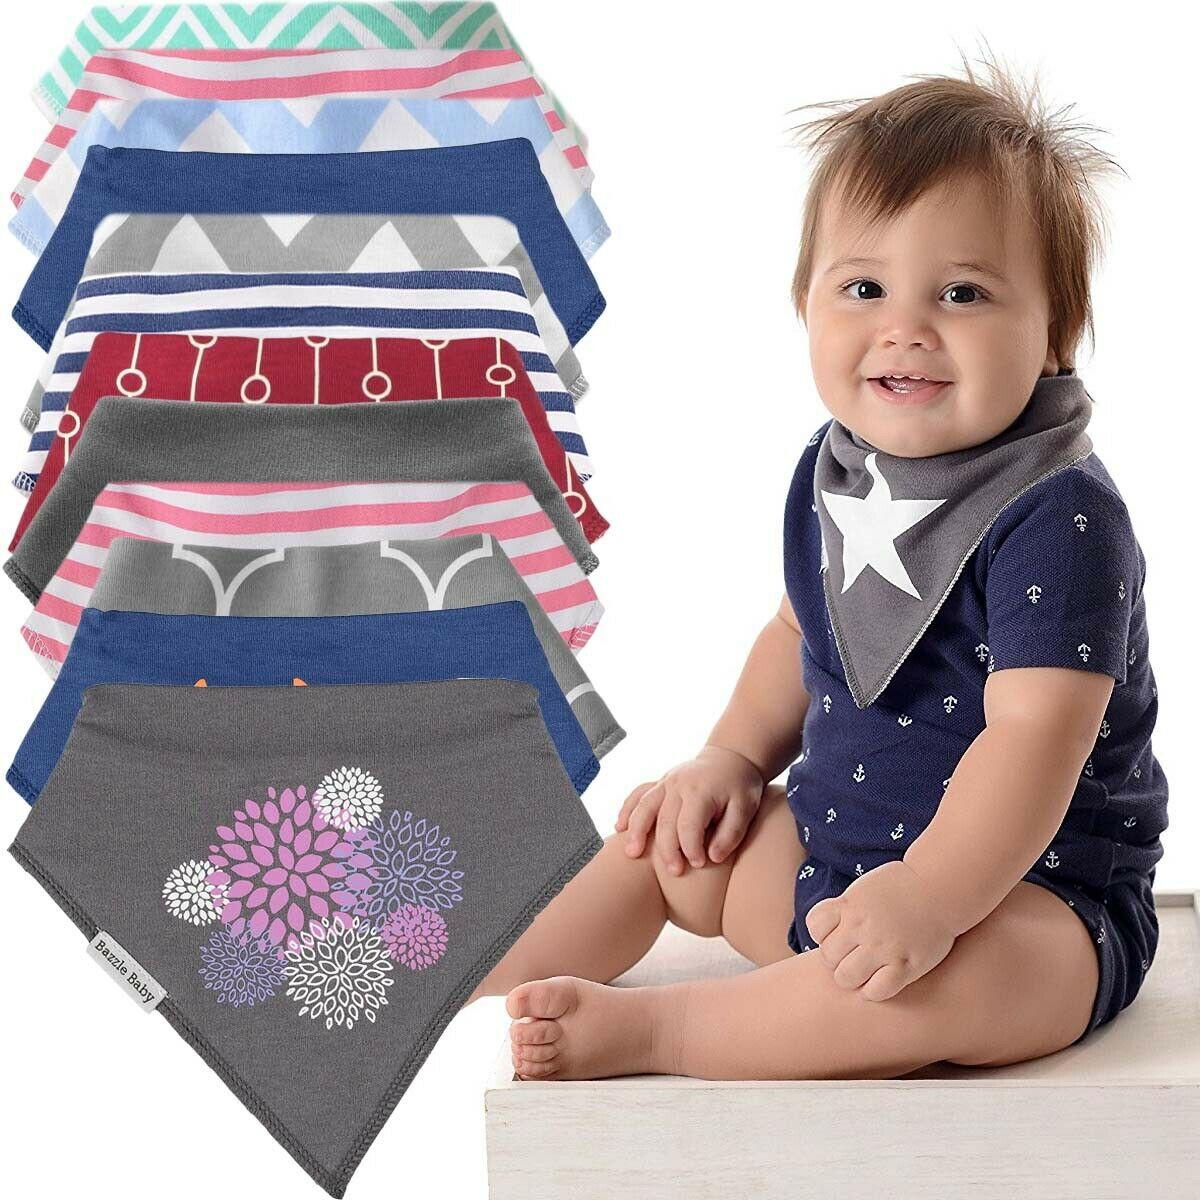 """Baby Bandana Drool Bibs for Drooling and Teething 2-Pack Fashion Bibs Gift Set /""""Audrey/"""" by Copper Pearl"""